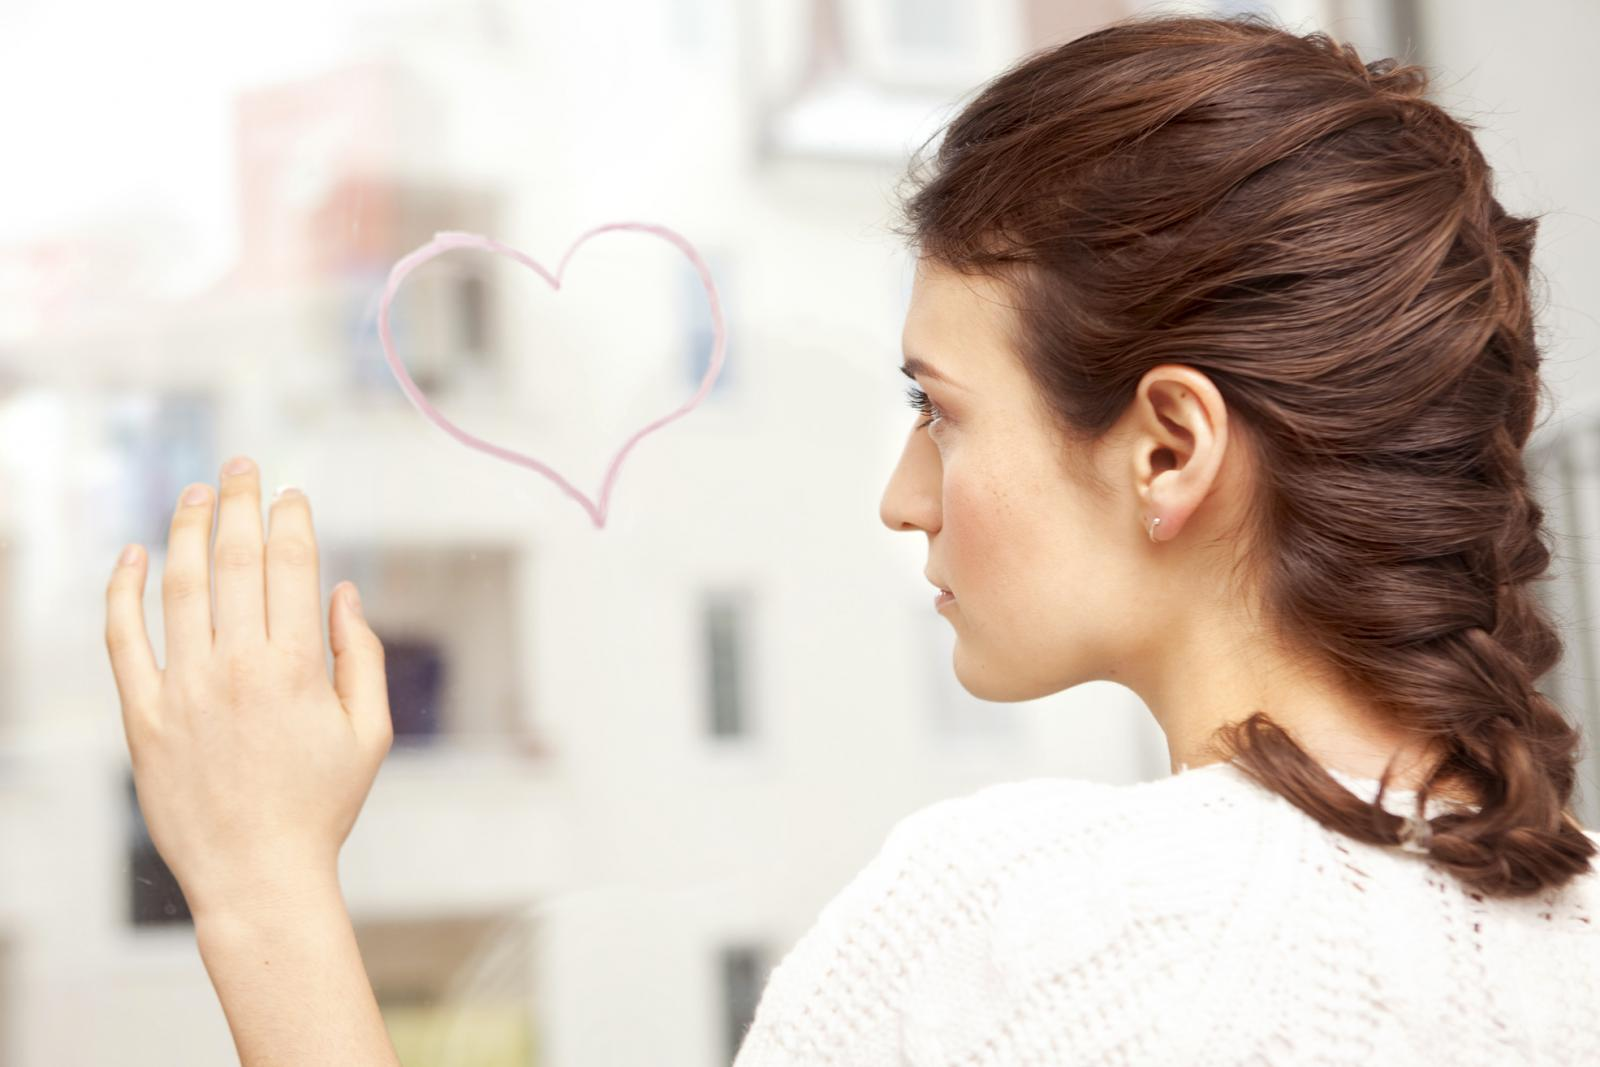 Woman looking sadly at a painted heart